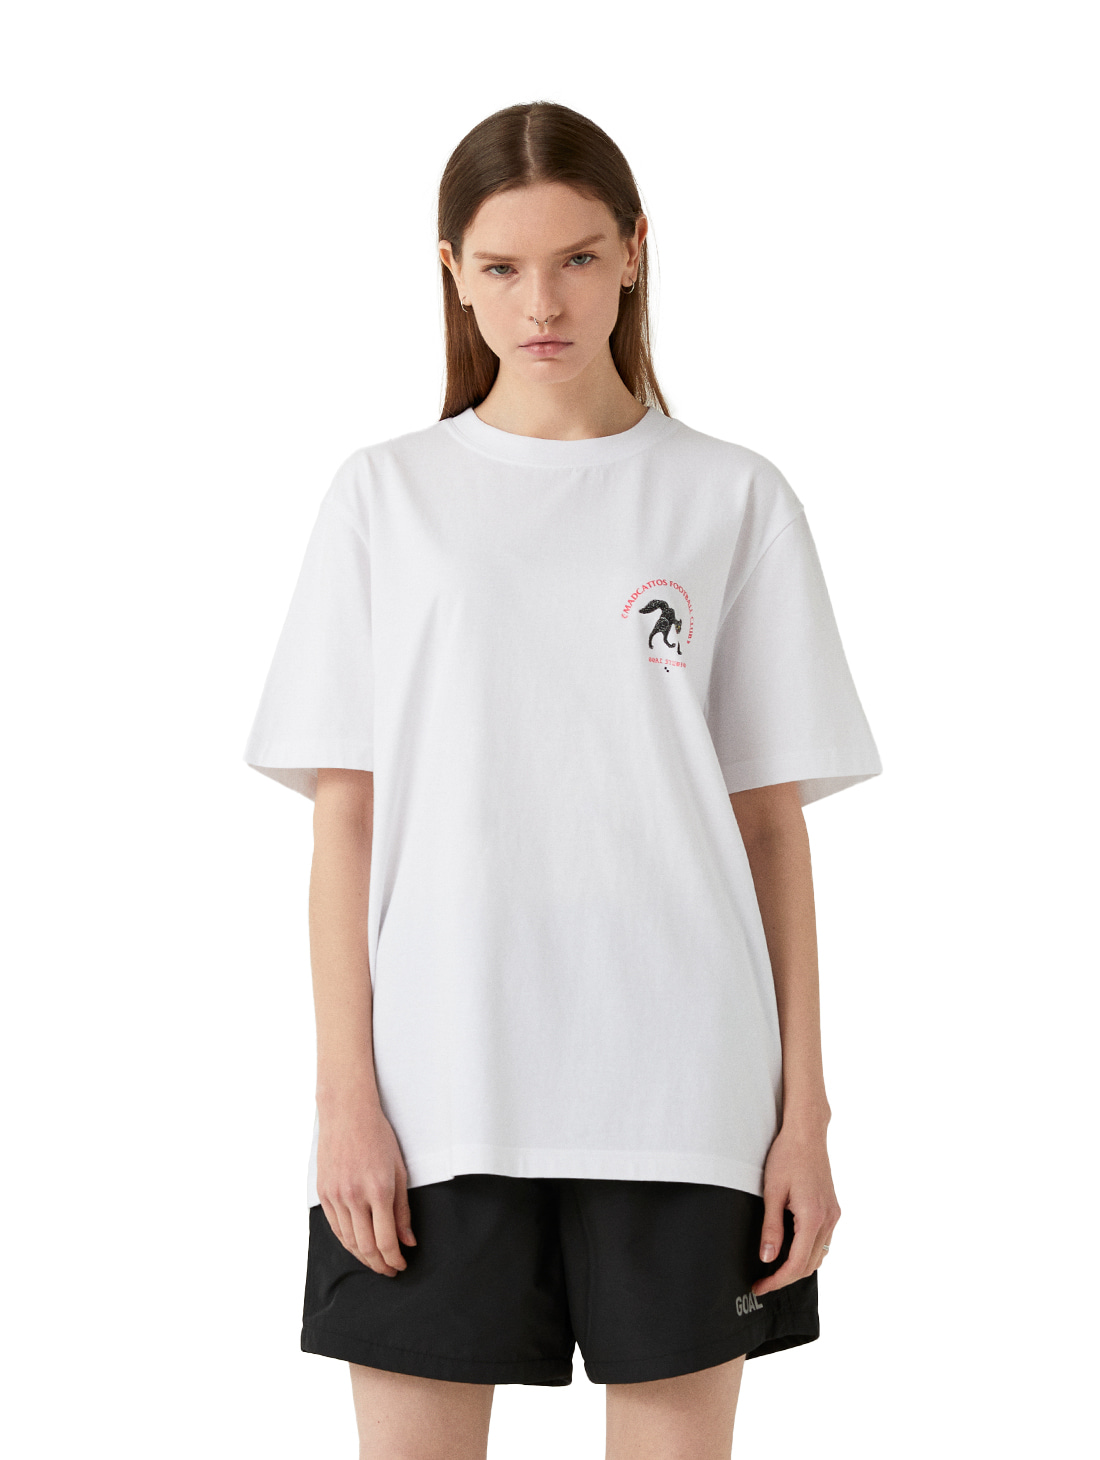 GOALSTUDIO MC SMALL FRONT GRAPHIC TEE - WHITE